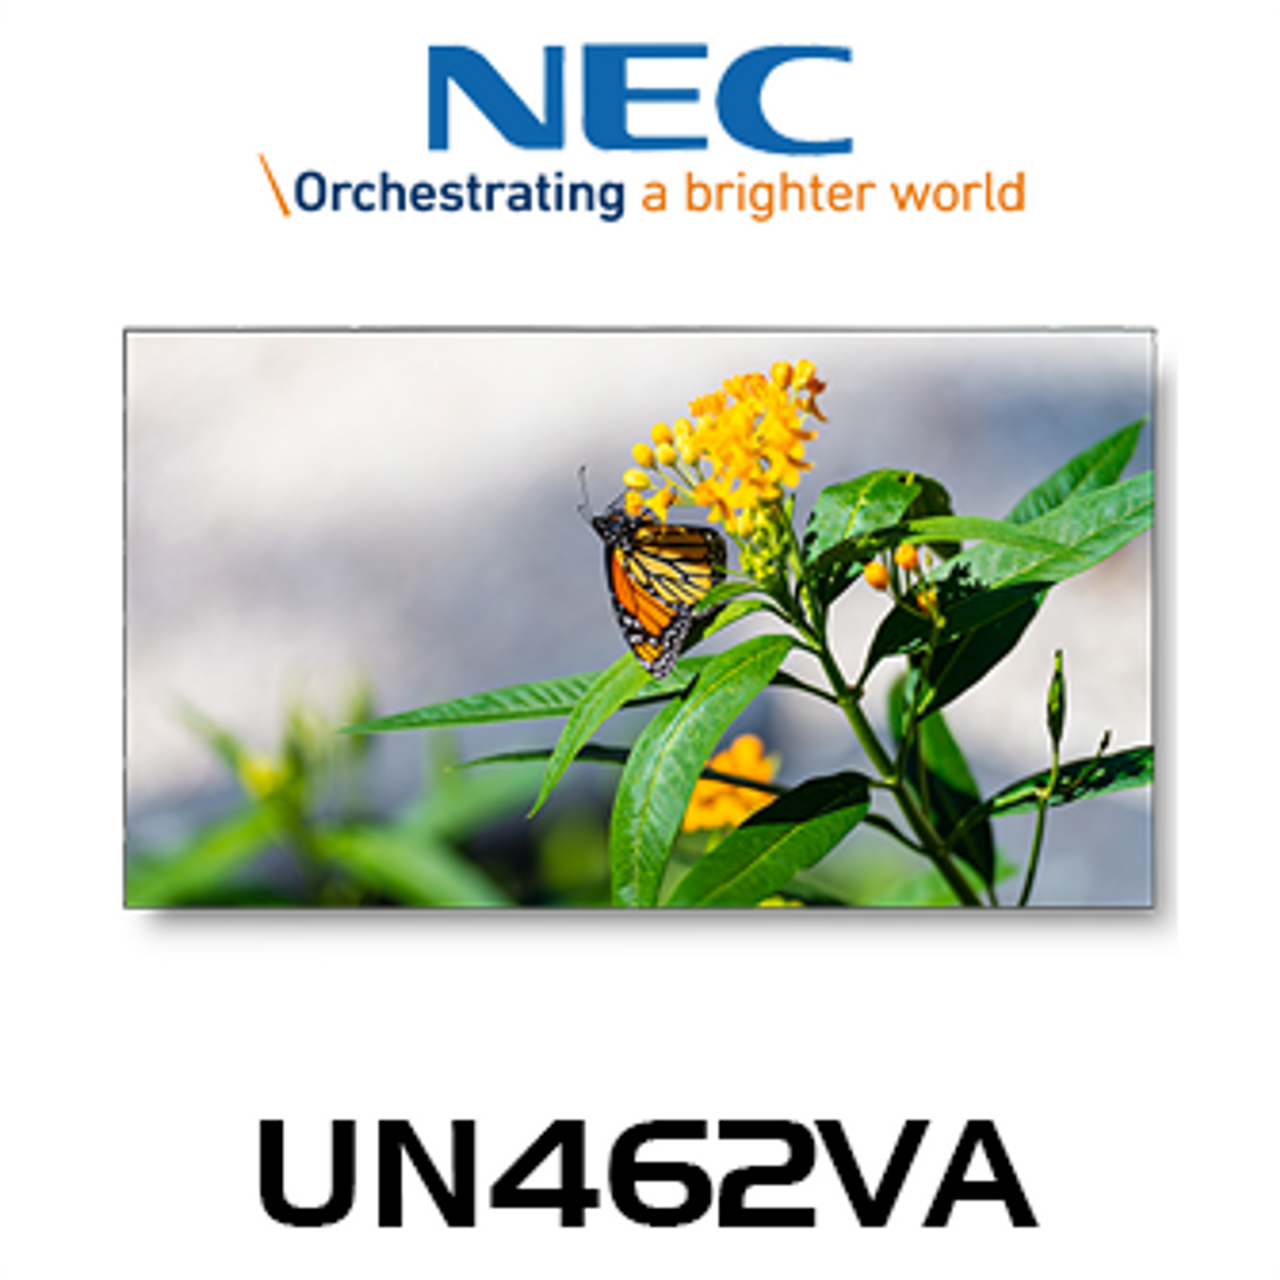 "NEC UN462VA 46"" Full HD Ultra Narrow Bezel 24/7 Video Wall Display"